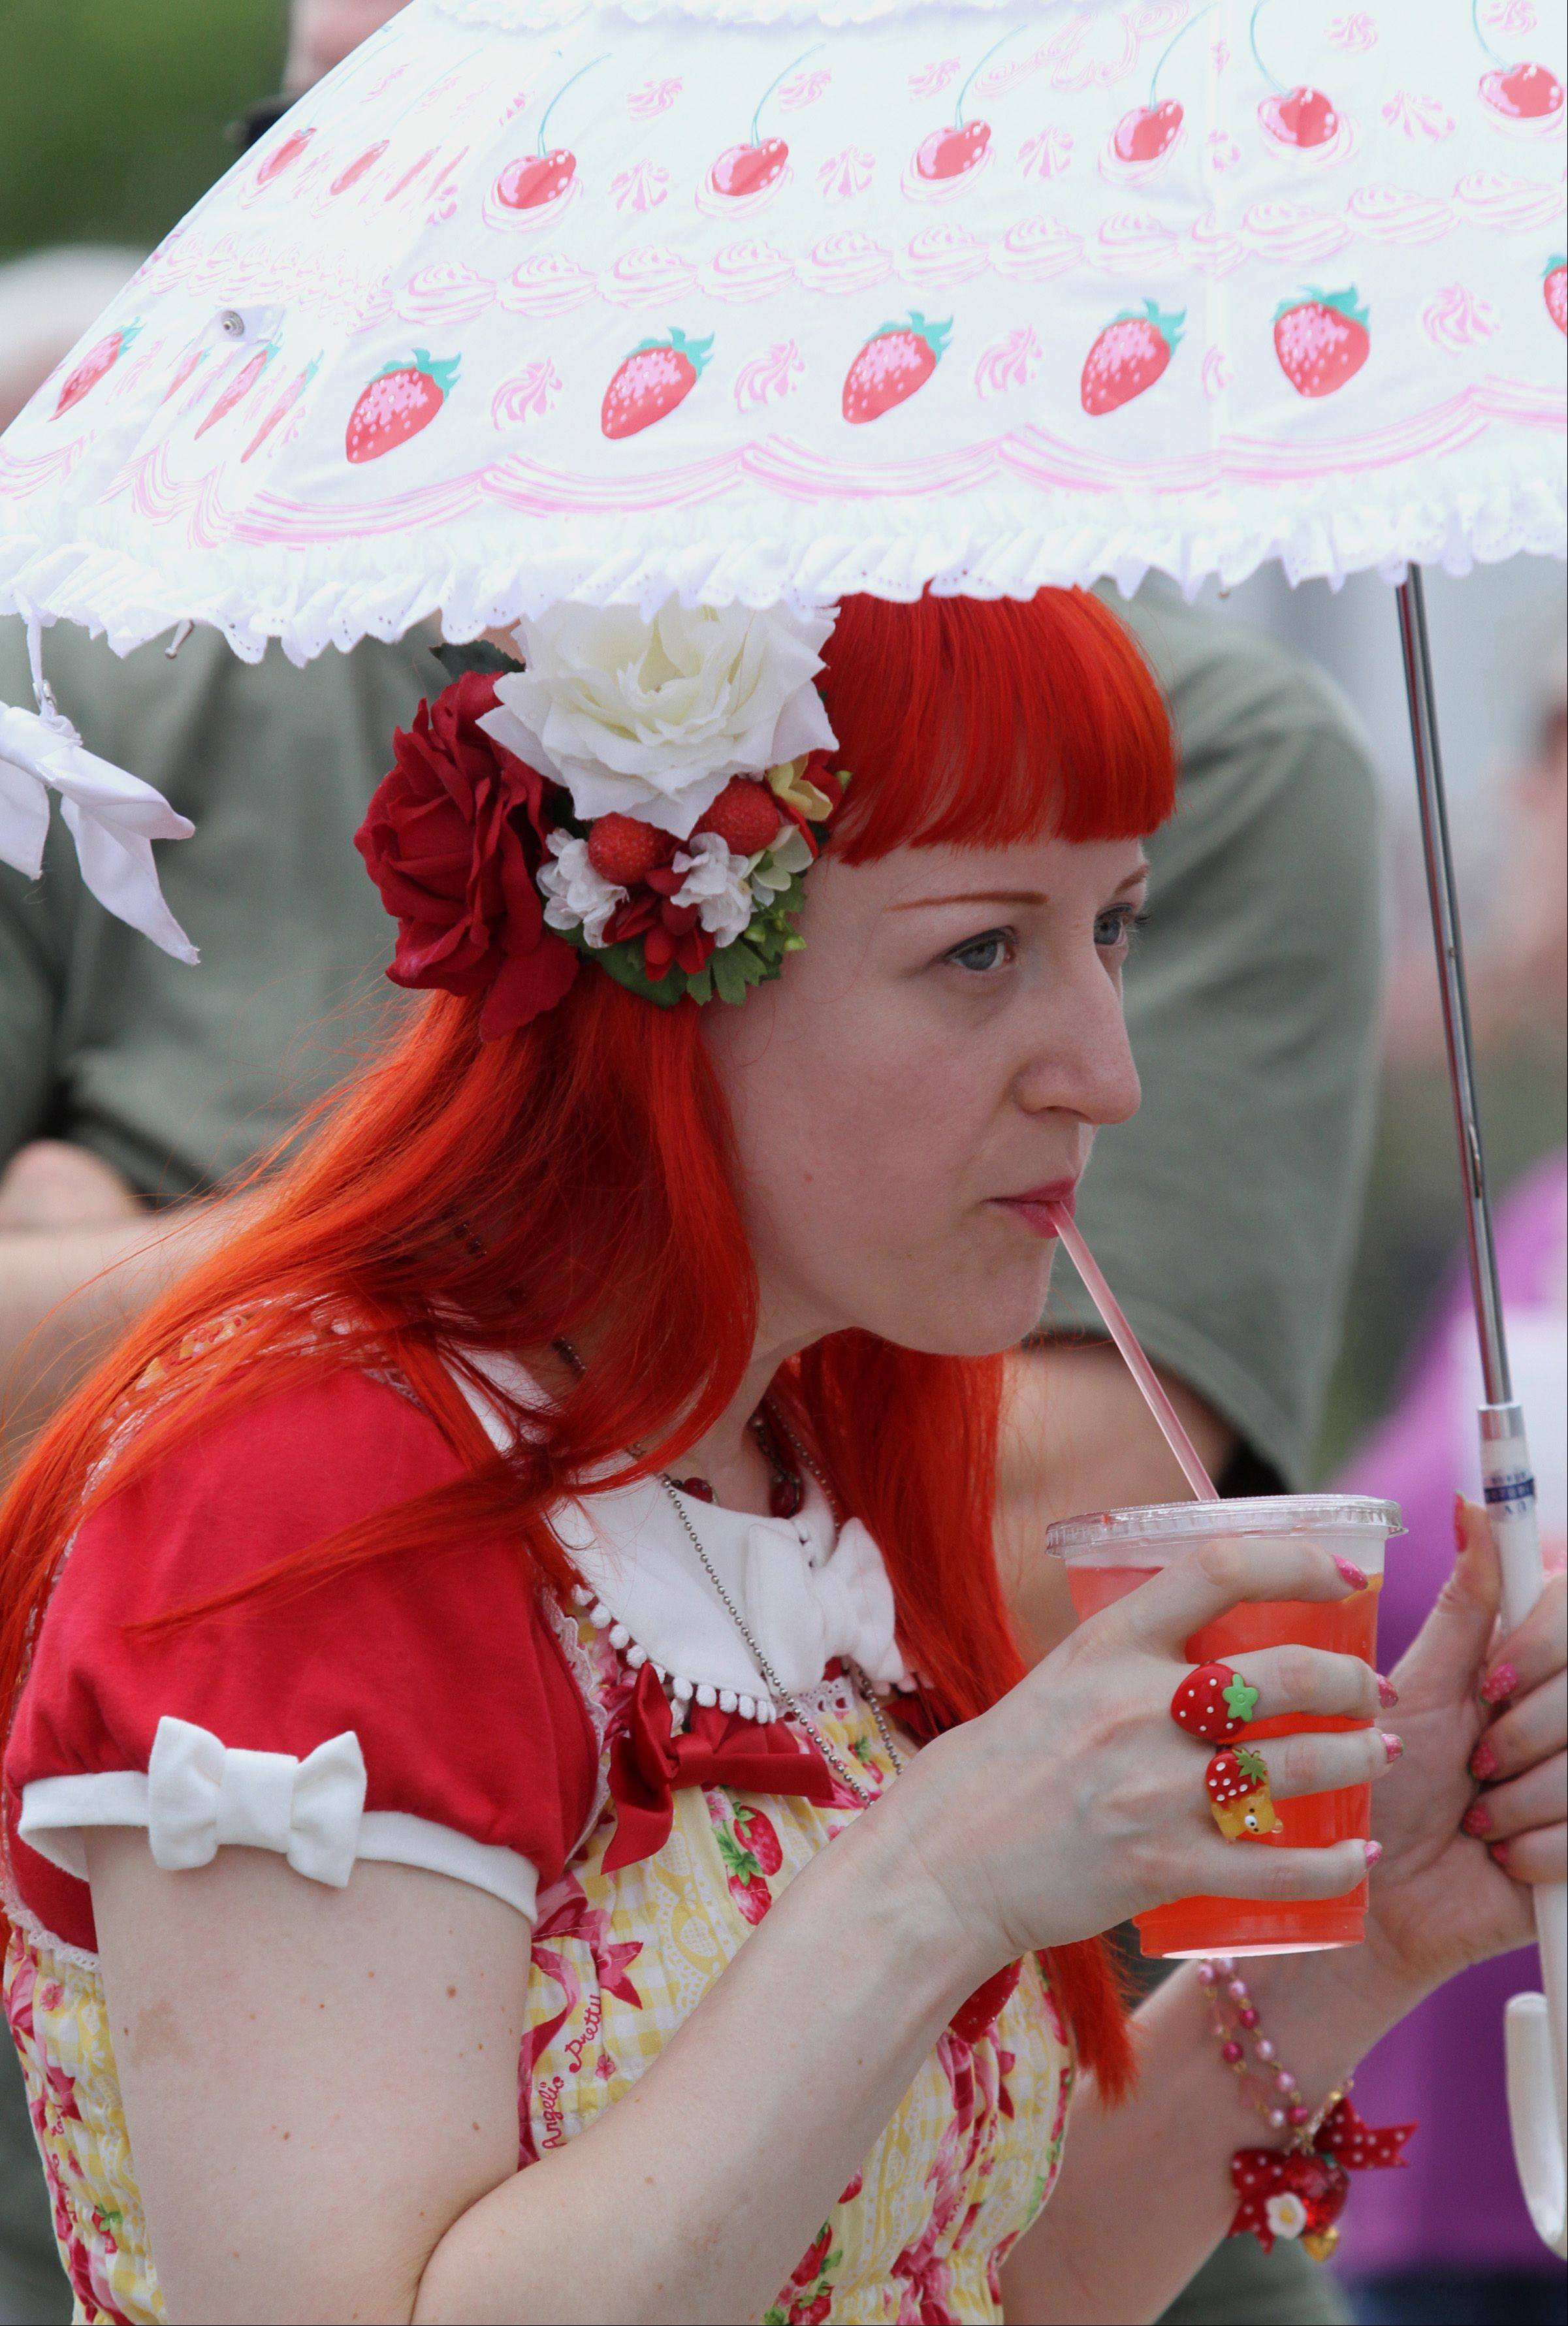 Jola Kupferer of Chicago sips on a strawberry drink at the Long Grove Strawberry Festival on Saturday. The festival continues 10 a.m. to 6 p.m. Sunday.